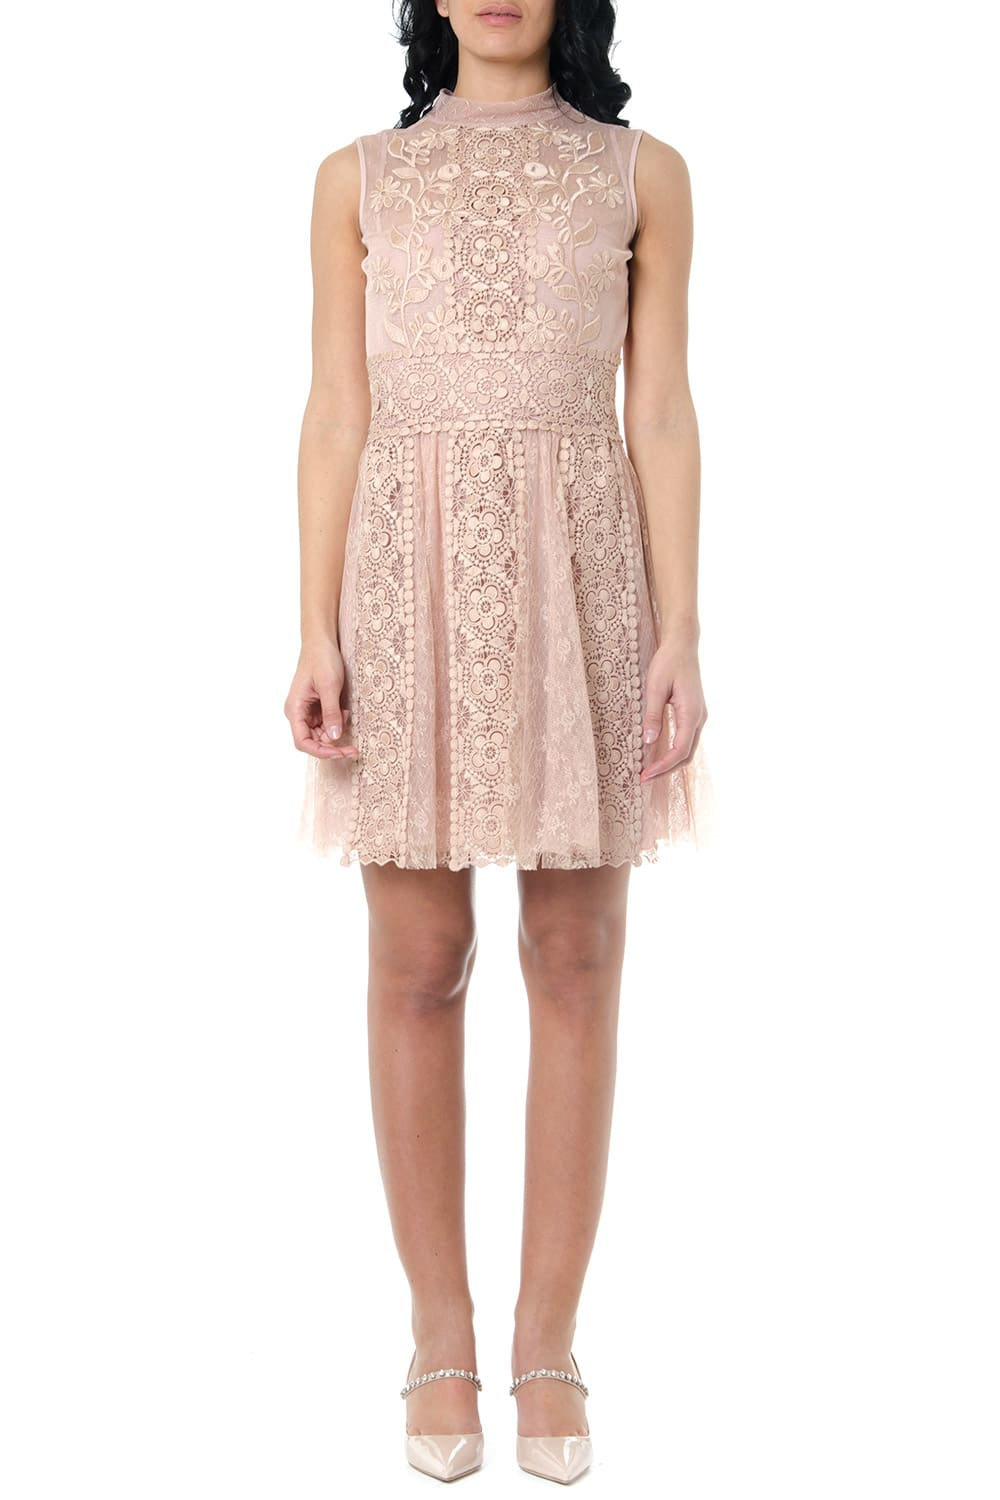 Buy RED Valentino Floral Embroidery Tulle And Lace Dress online, shop RED Valentino with free shipping